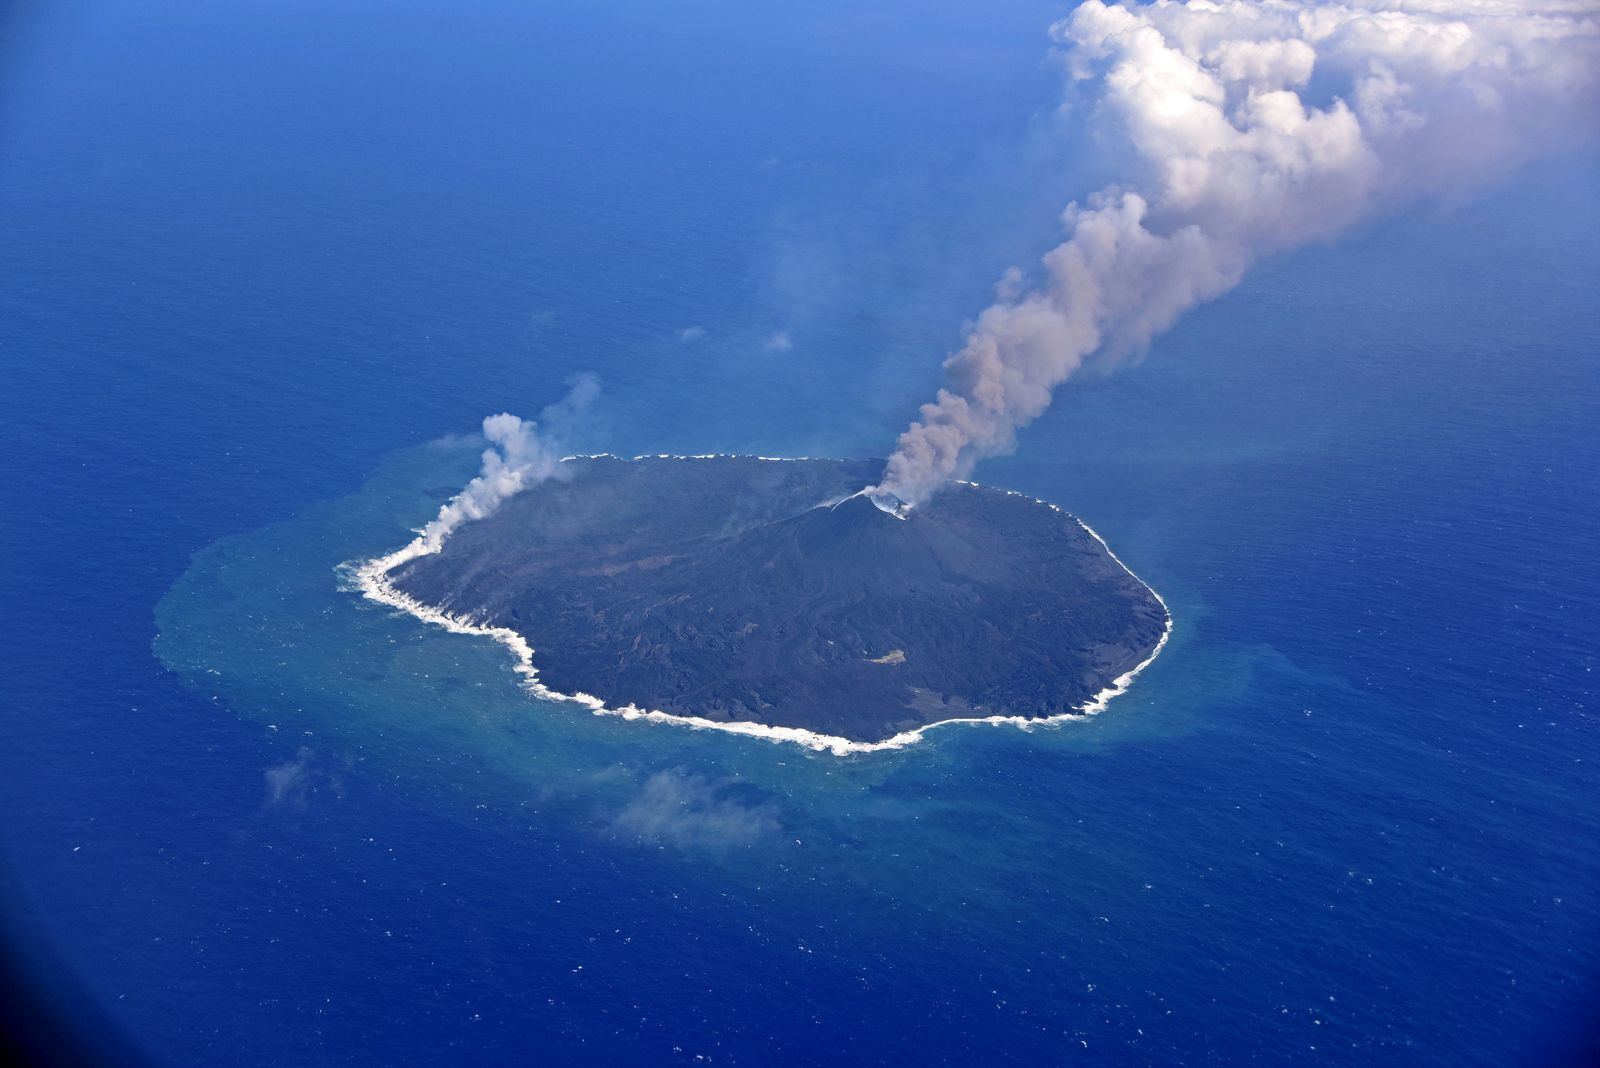 Nishinoshima - activity on March 9, 2020 - overview by the Japan Coast Guards